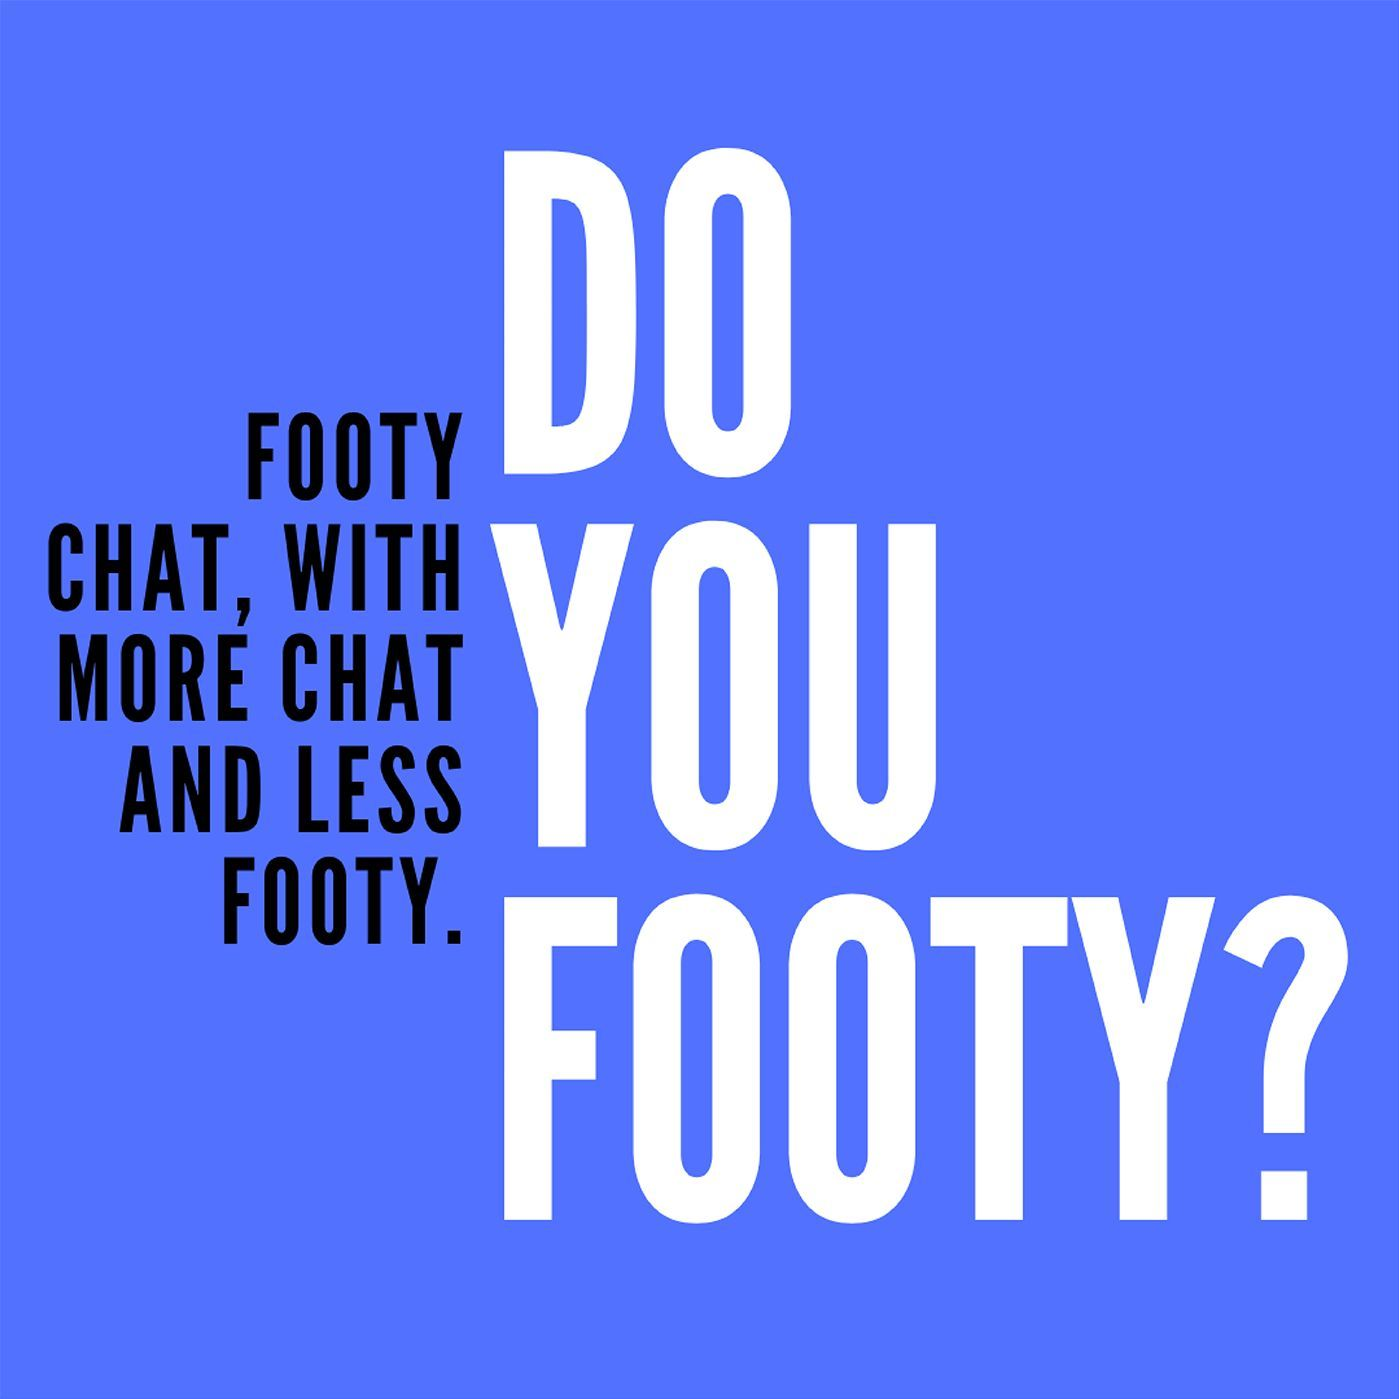 Ep 18: Football enjoyers unite....we're going to the GF!